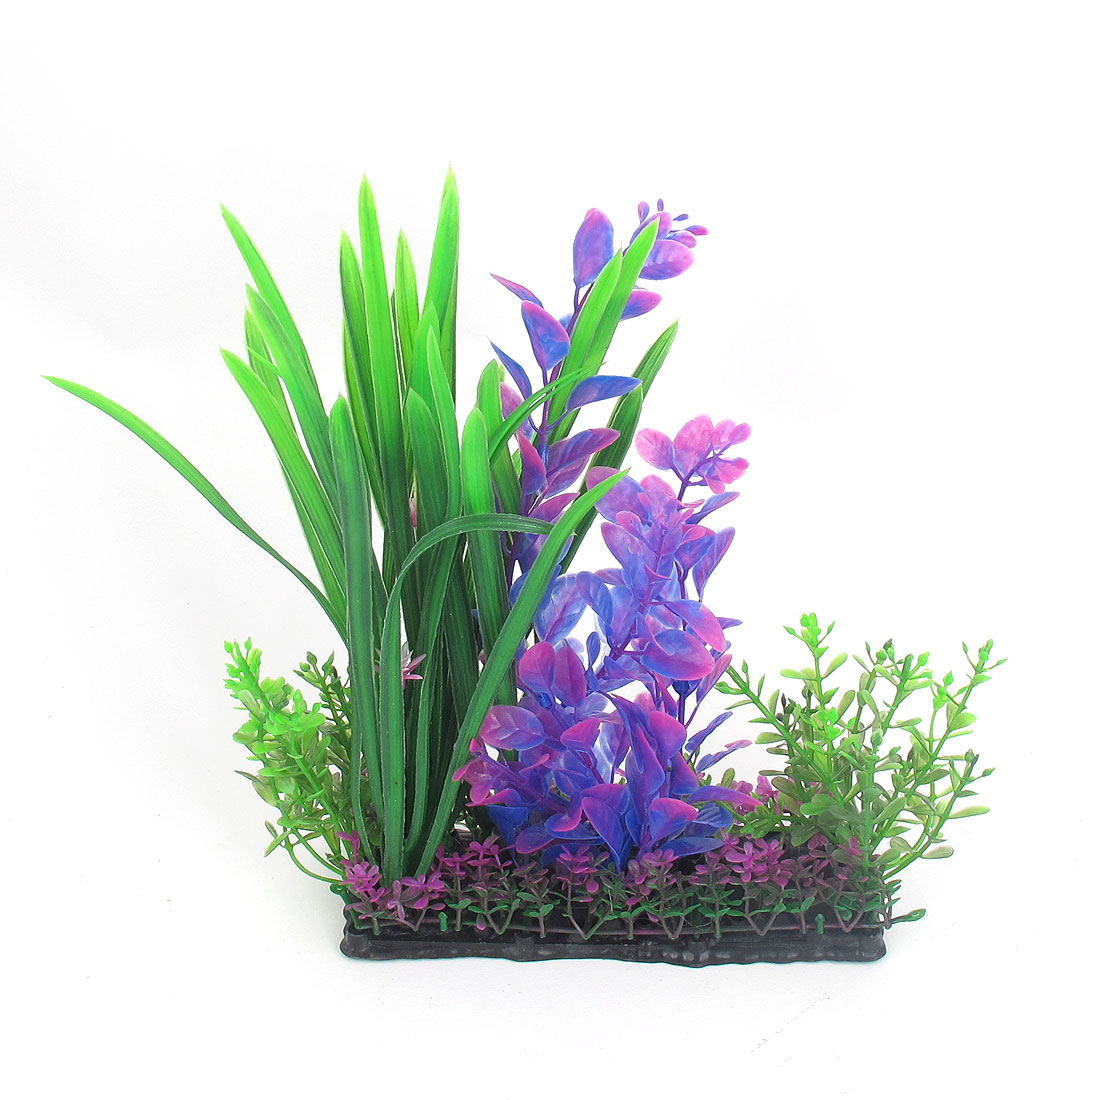 "8.7"" Height Multicolour Plastic Artificial Ornament Rectangle Plant for Aquarium Fish Tank"